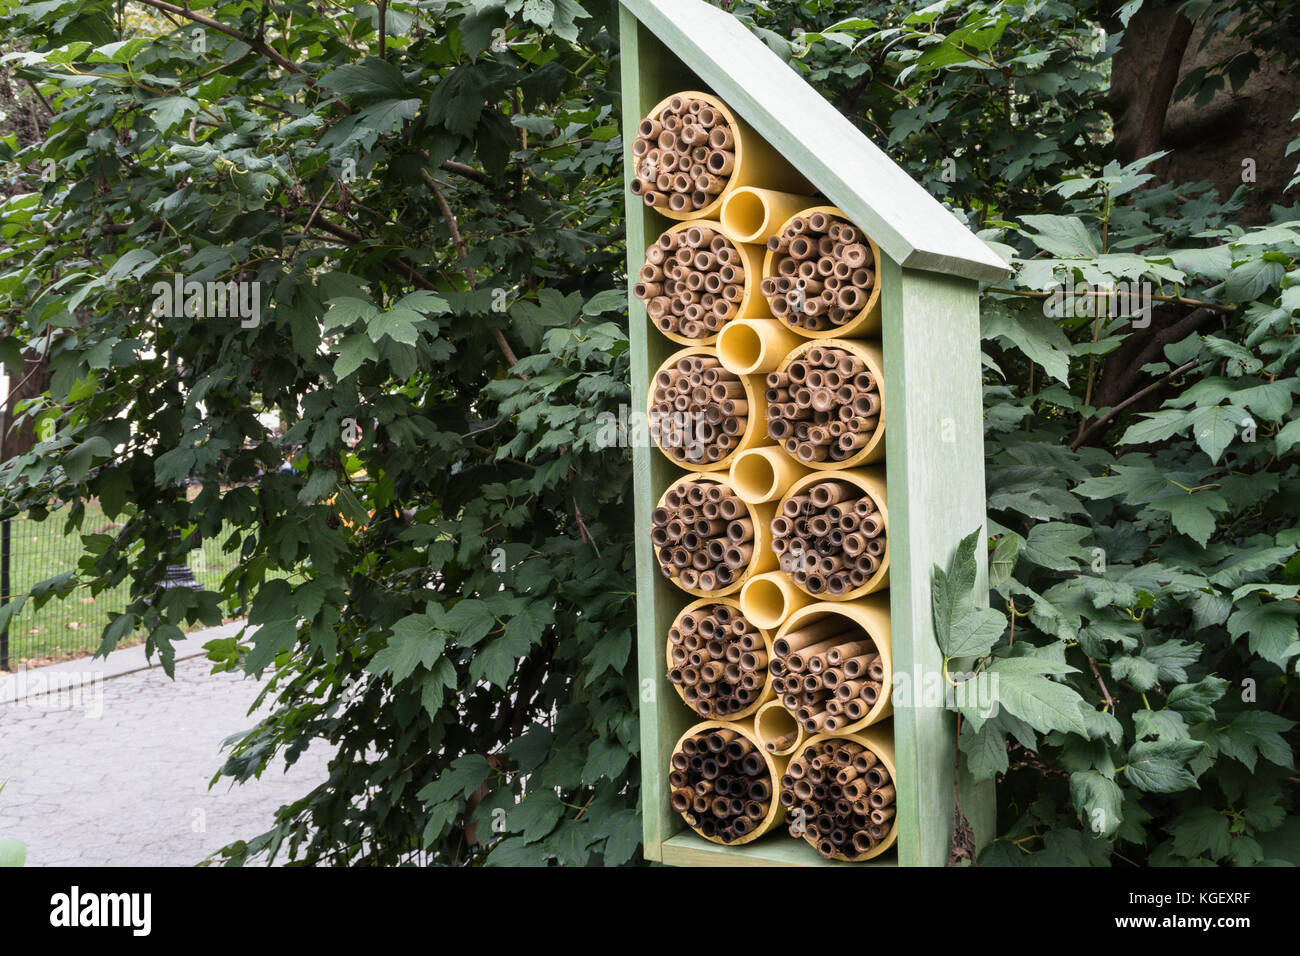 bee house stockfotos bee house bilder alamy. Black Bedroom Furniture Sets. Home Design Ideas